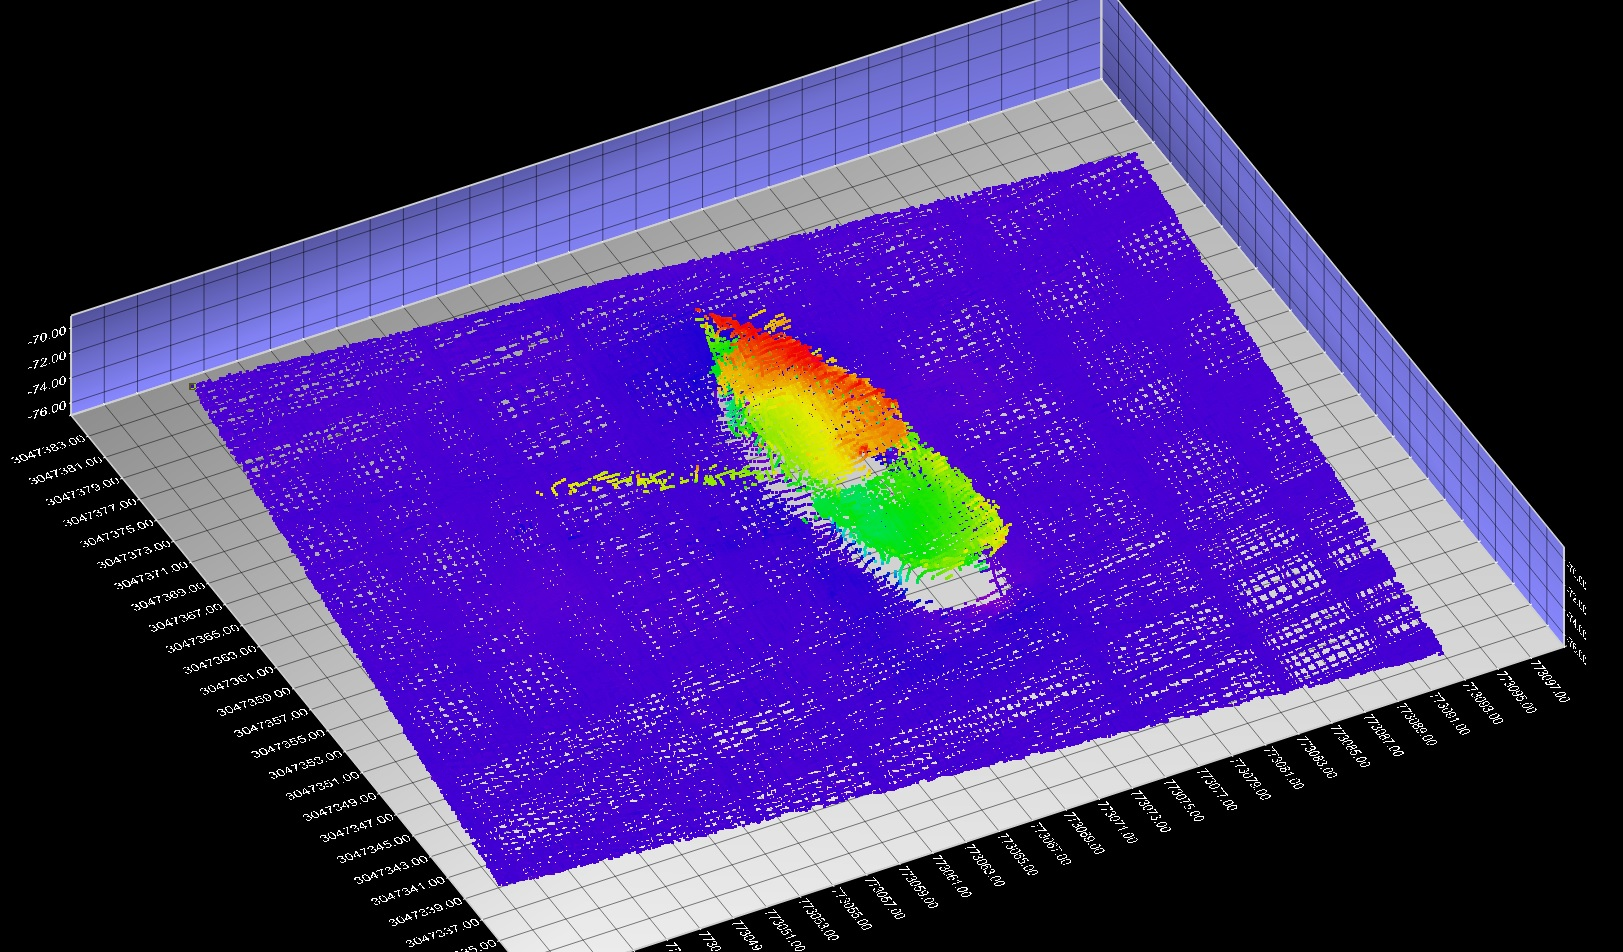 The third wreck found during the April C-SCAMP mapping cruise is shown here from a different angle.  Multiple passes are needed to properly build up a detailed image of something like a wreck.